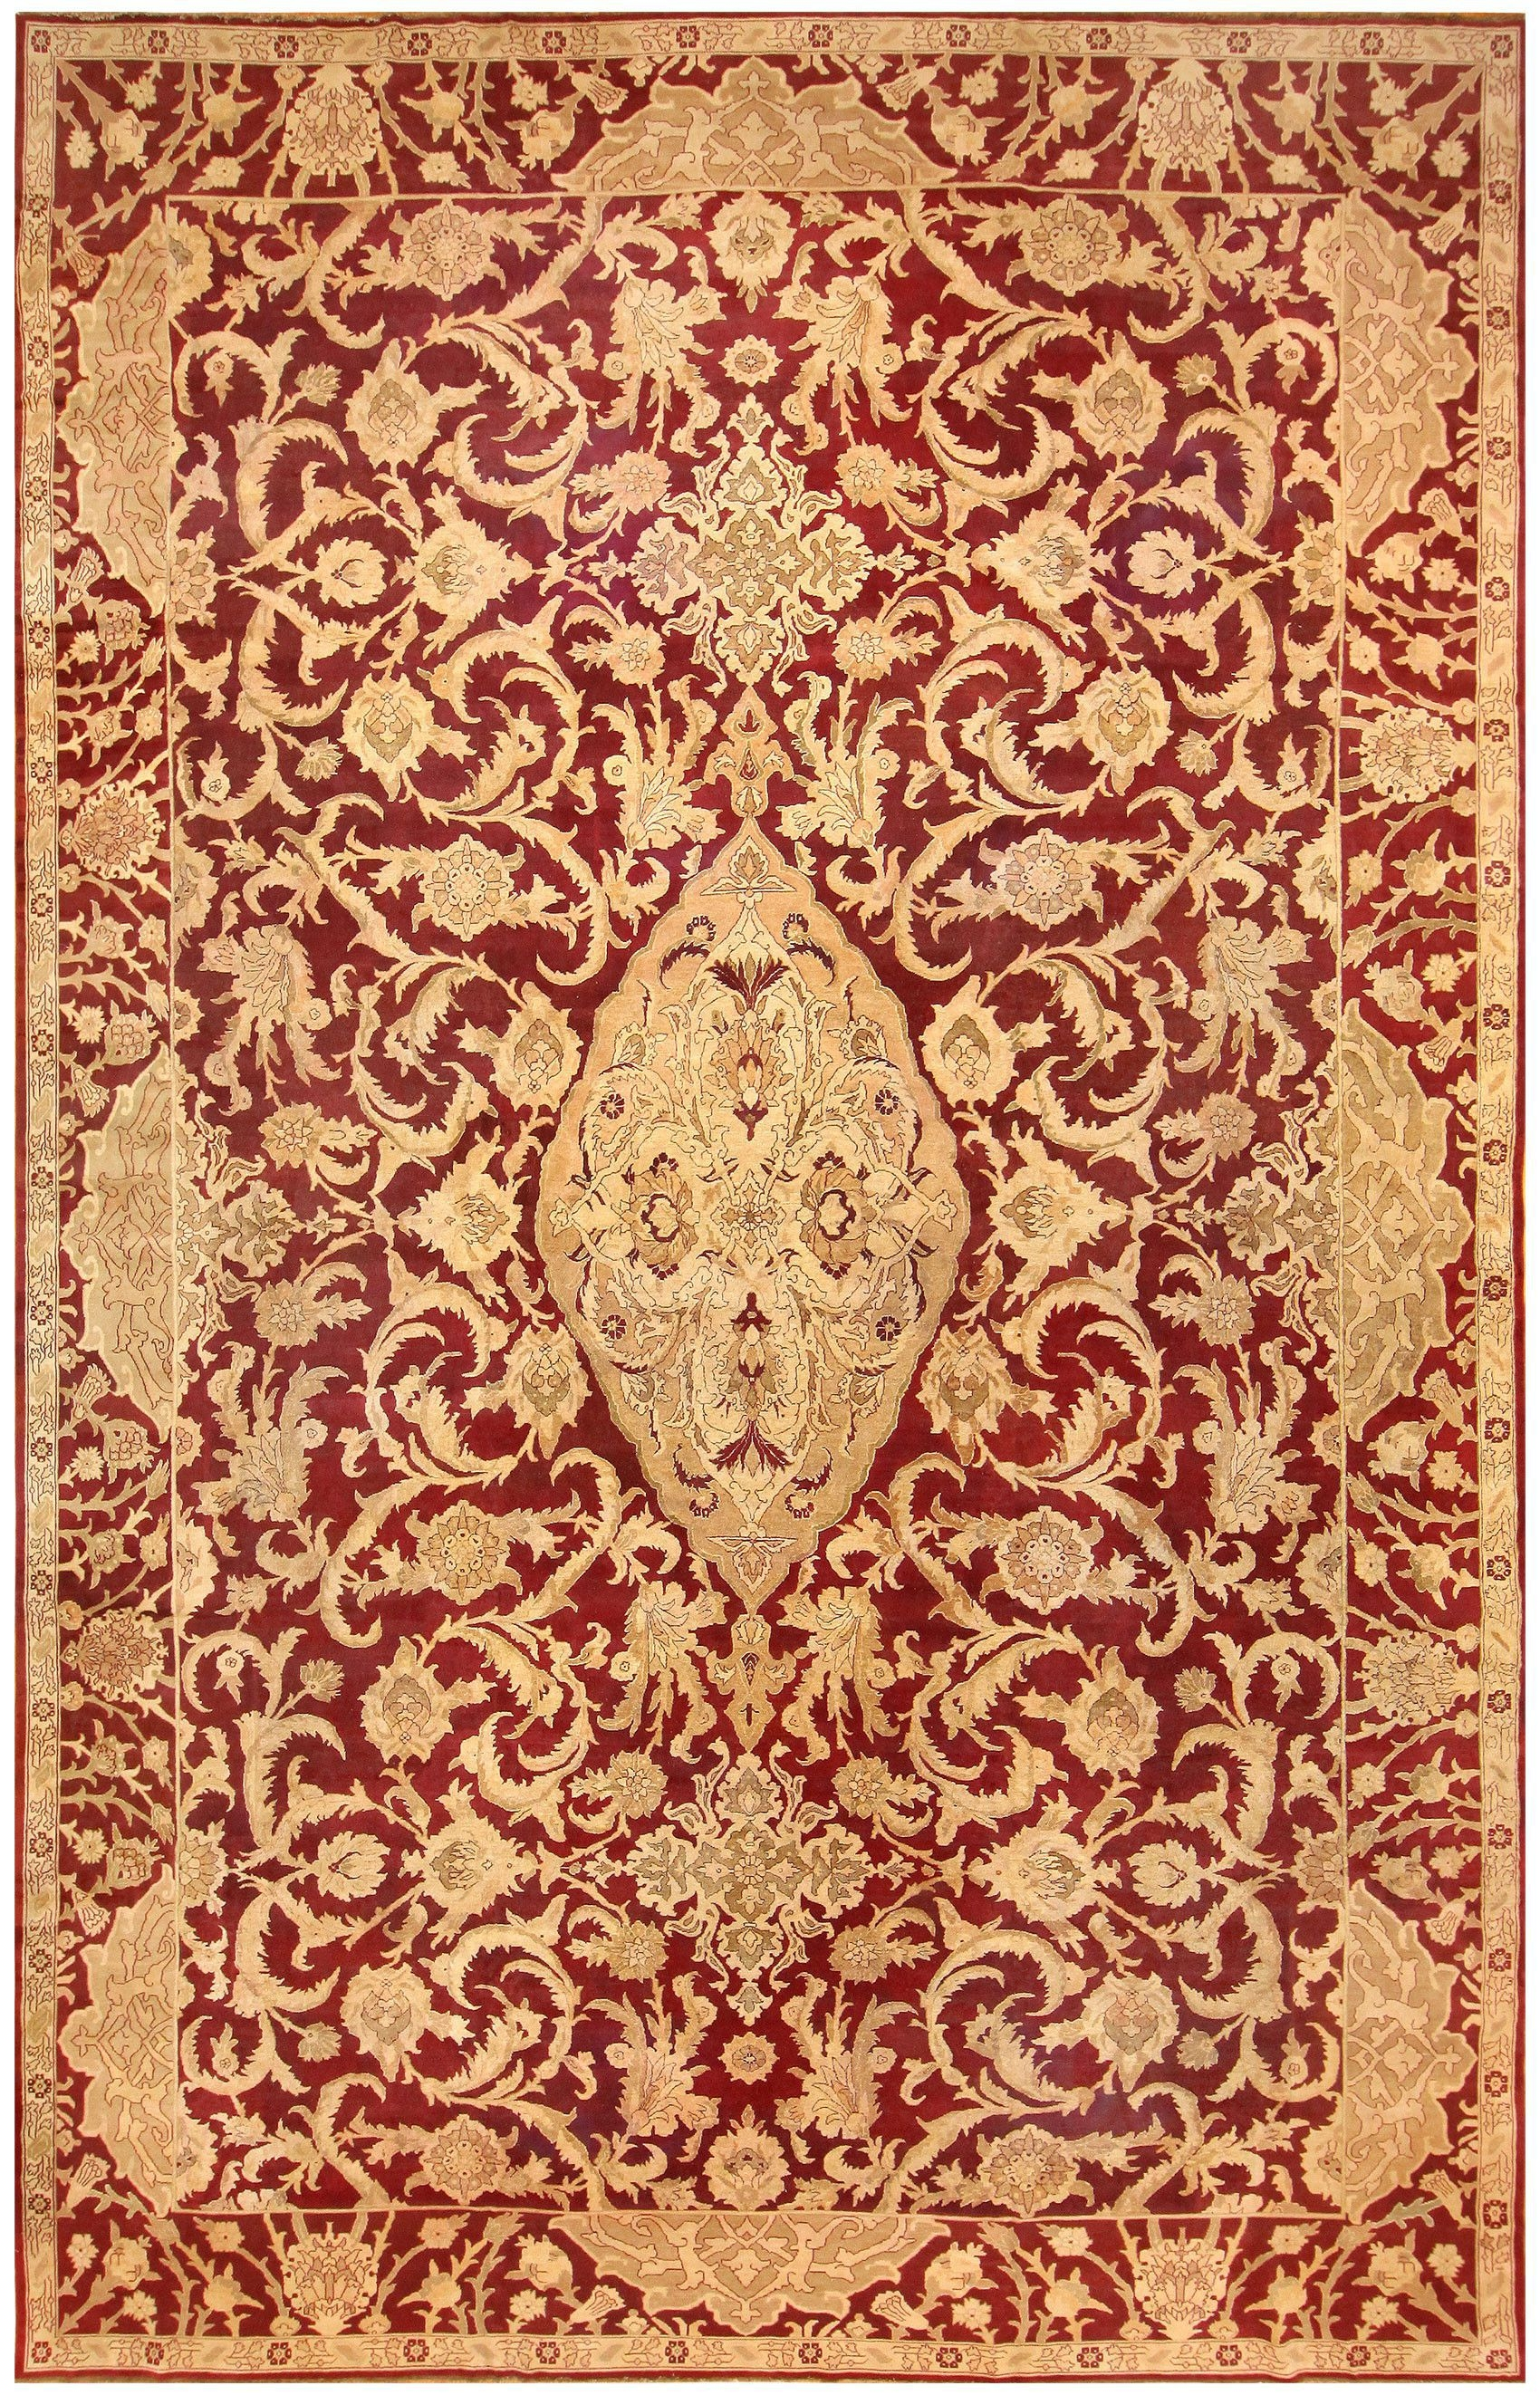 Agra Rug Agra Rugs Agra Carpets Antique Oriental Rug 42095 With Agra Rugs (Image 1 of 15)